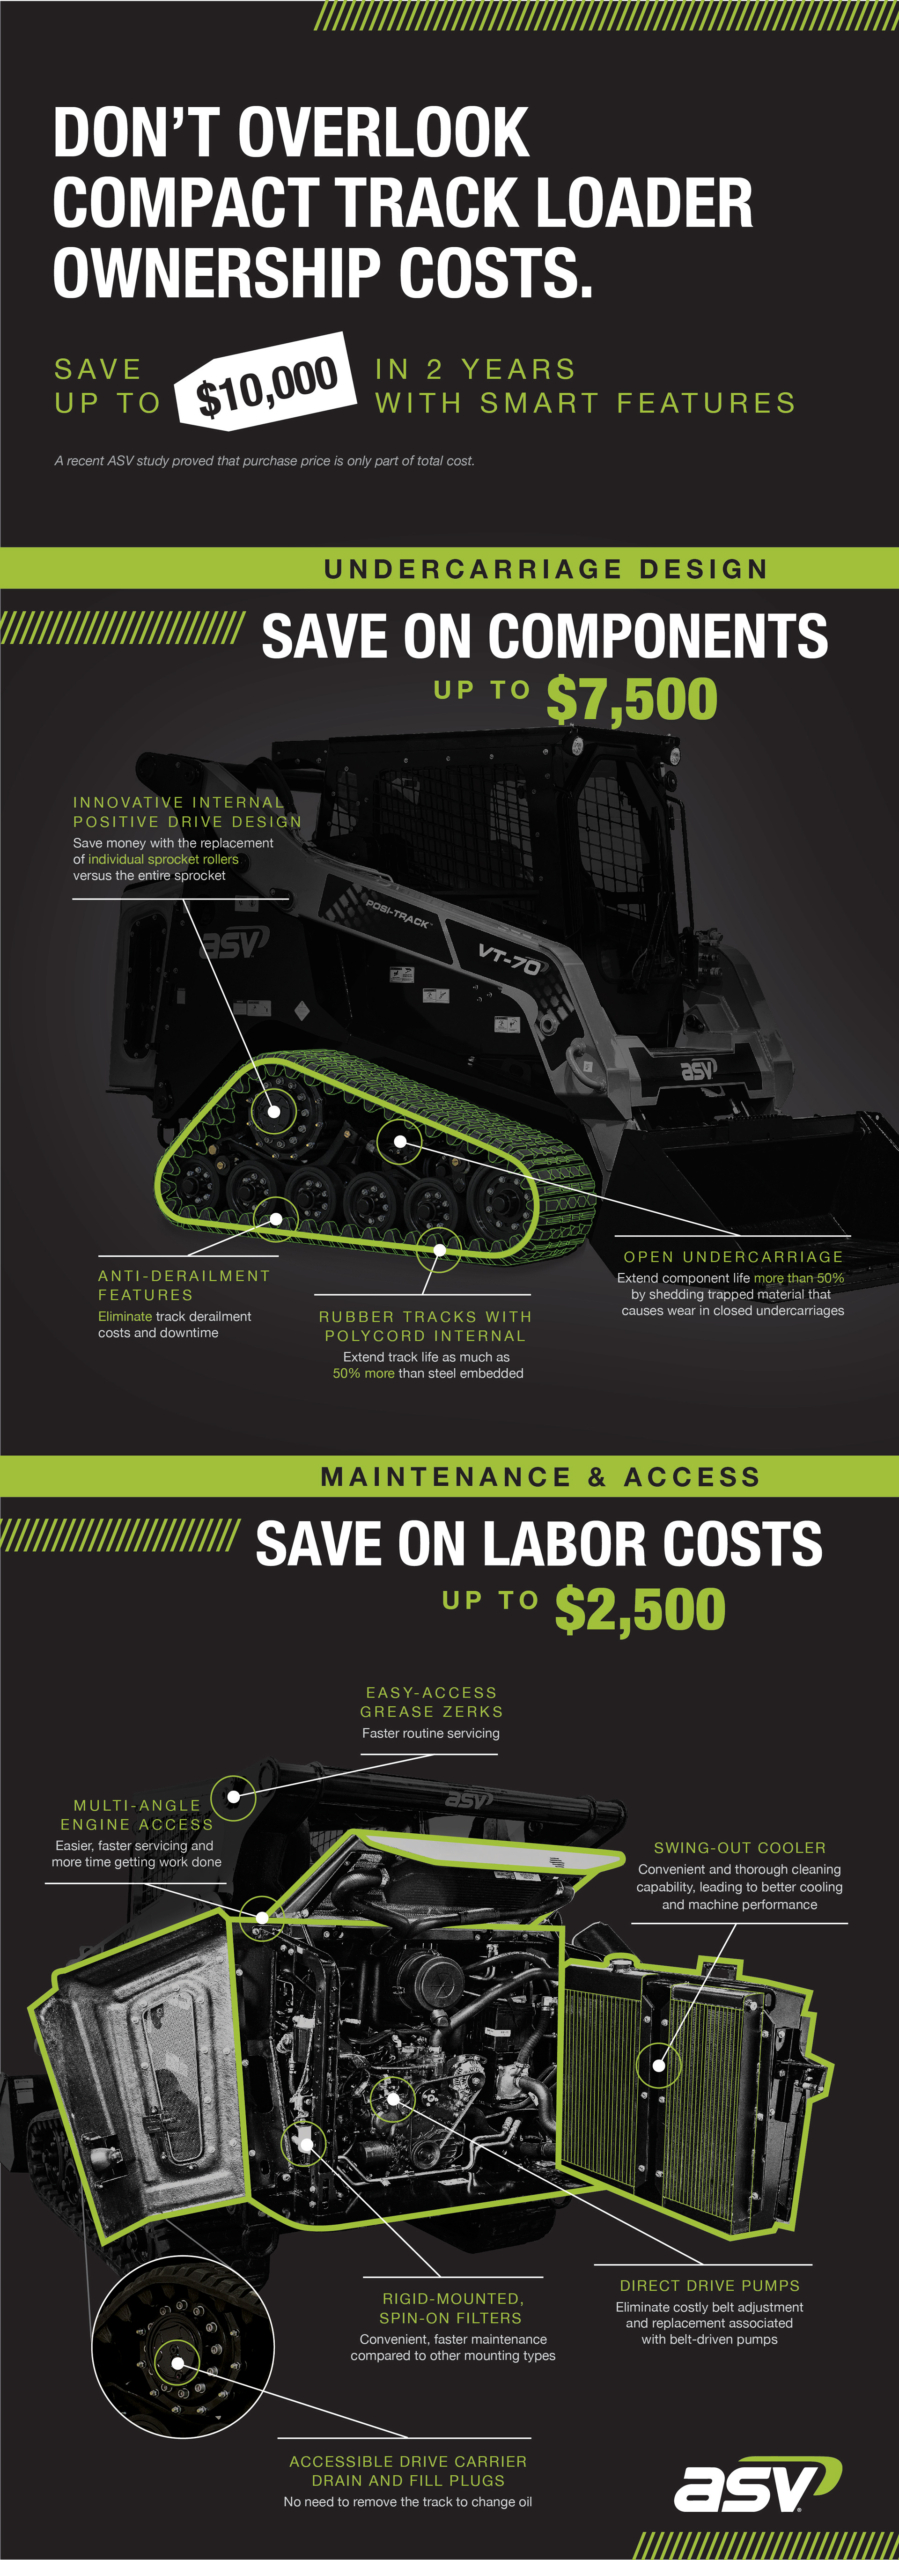 Choosing an ASV Posi-Track Loader® Could Save You Up to $10,000